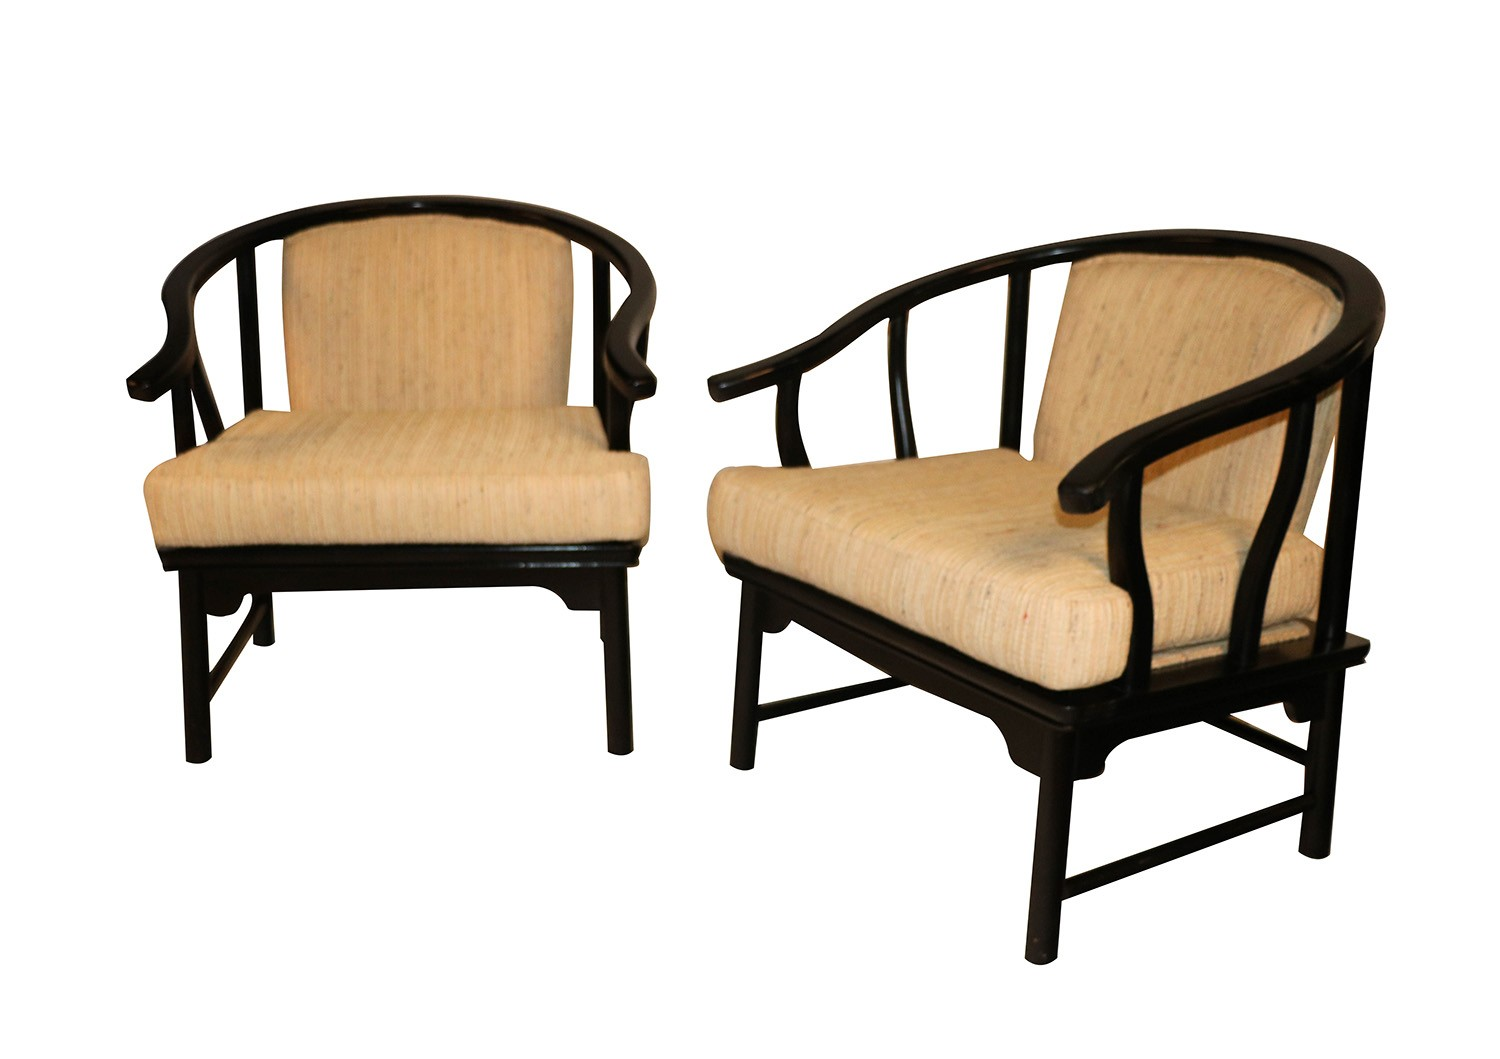 Strange Chinese Style Black Lacquer Horseshoe Arm Chairs Pair Pdpeps Interior Chair Design Pdpepsorg